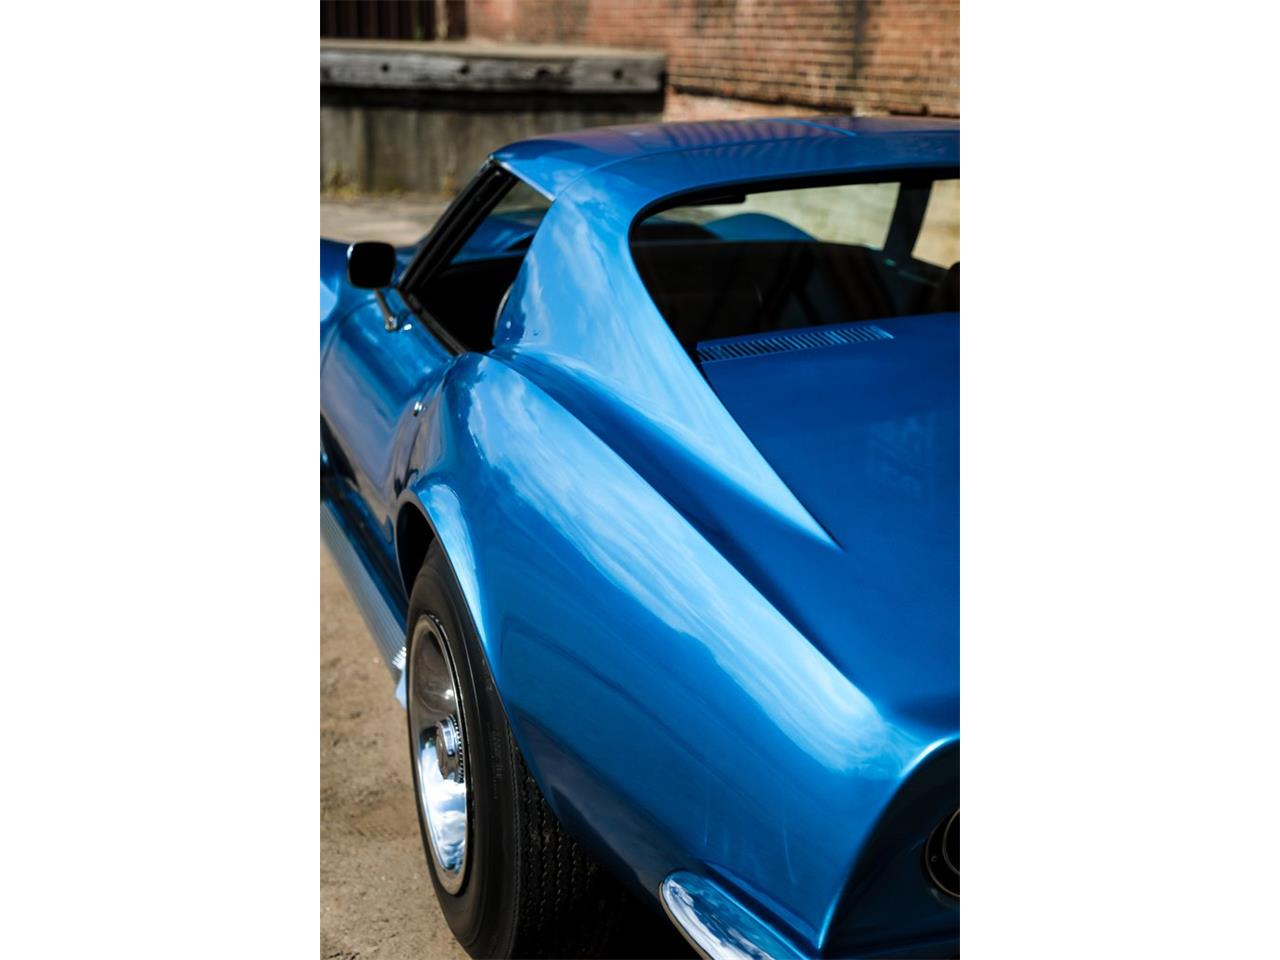 1969 Chevrolet Corvette for sale in Wallingford, CT – photo 91